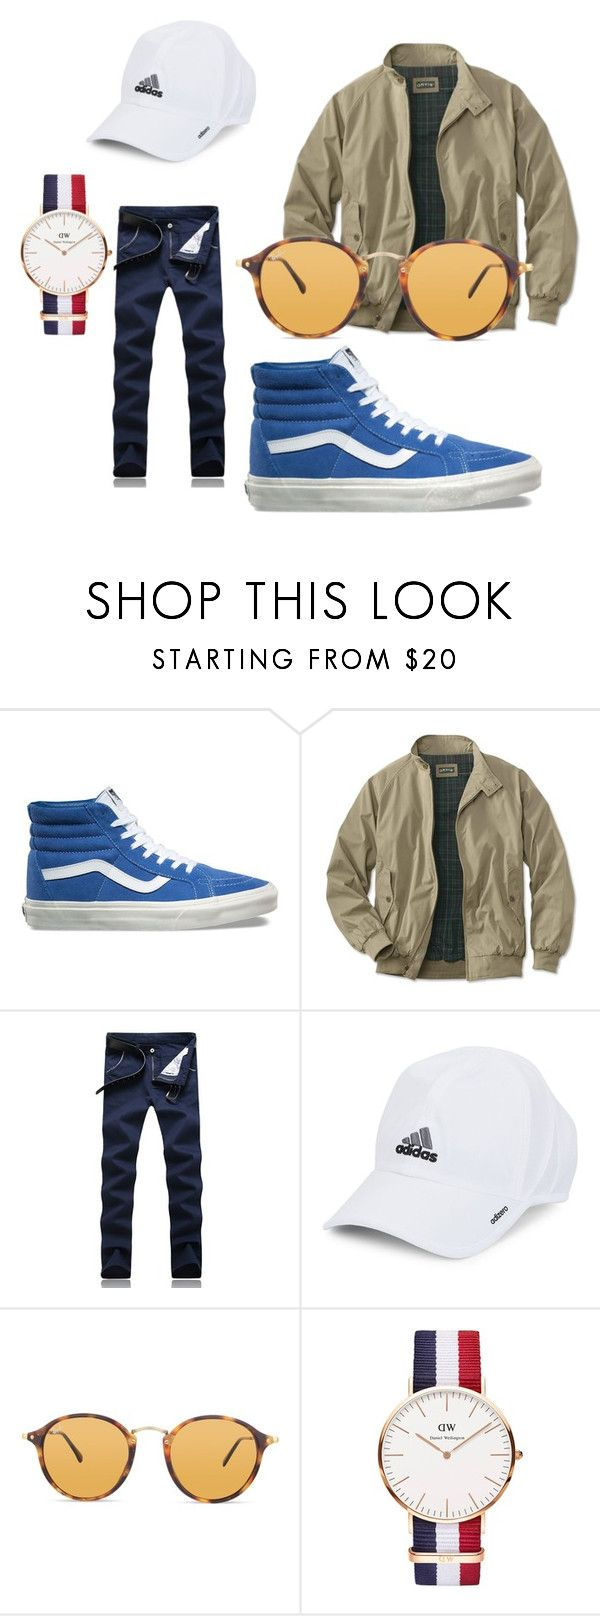 """""""Untitled #16"""" by tommy-el-yhan-pelle on Polyvore featuring Vans, adidas, Ray-Ban, Daniel Wellington, men's fashion and menswear"""